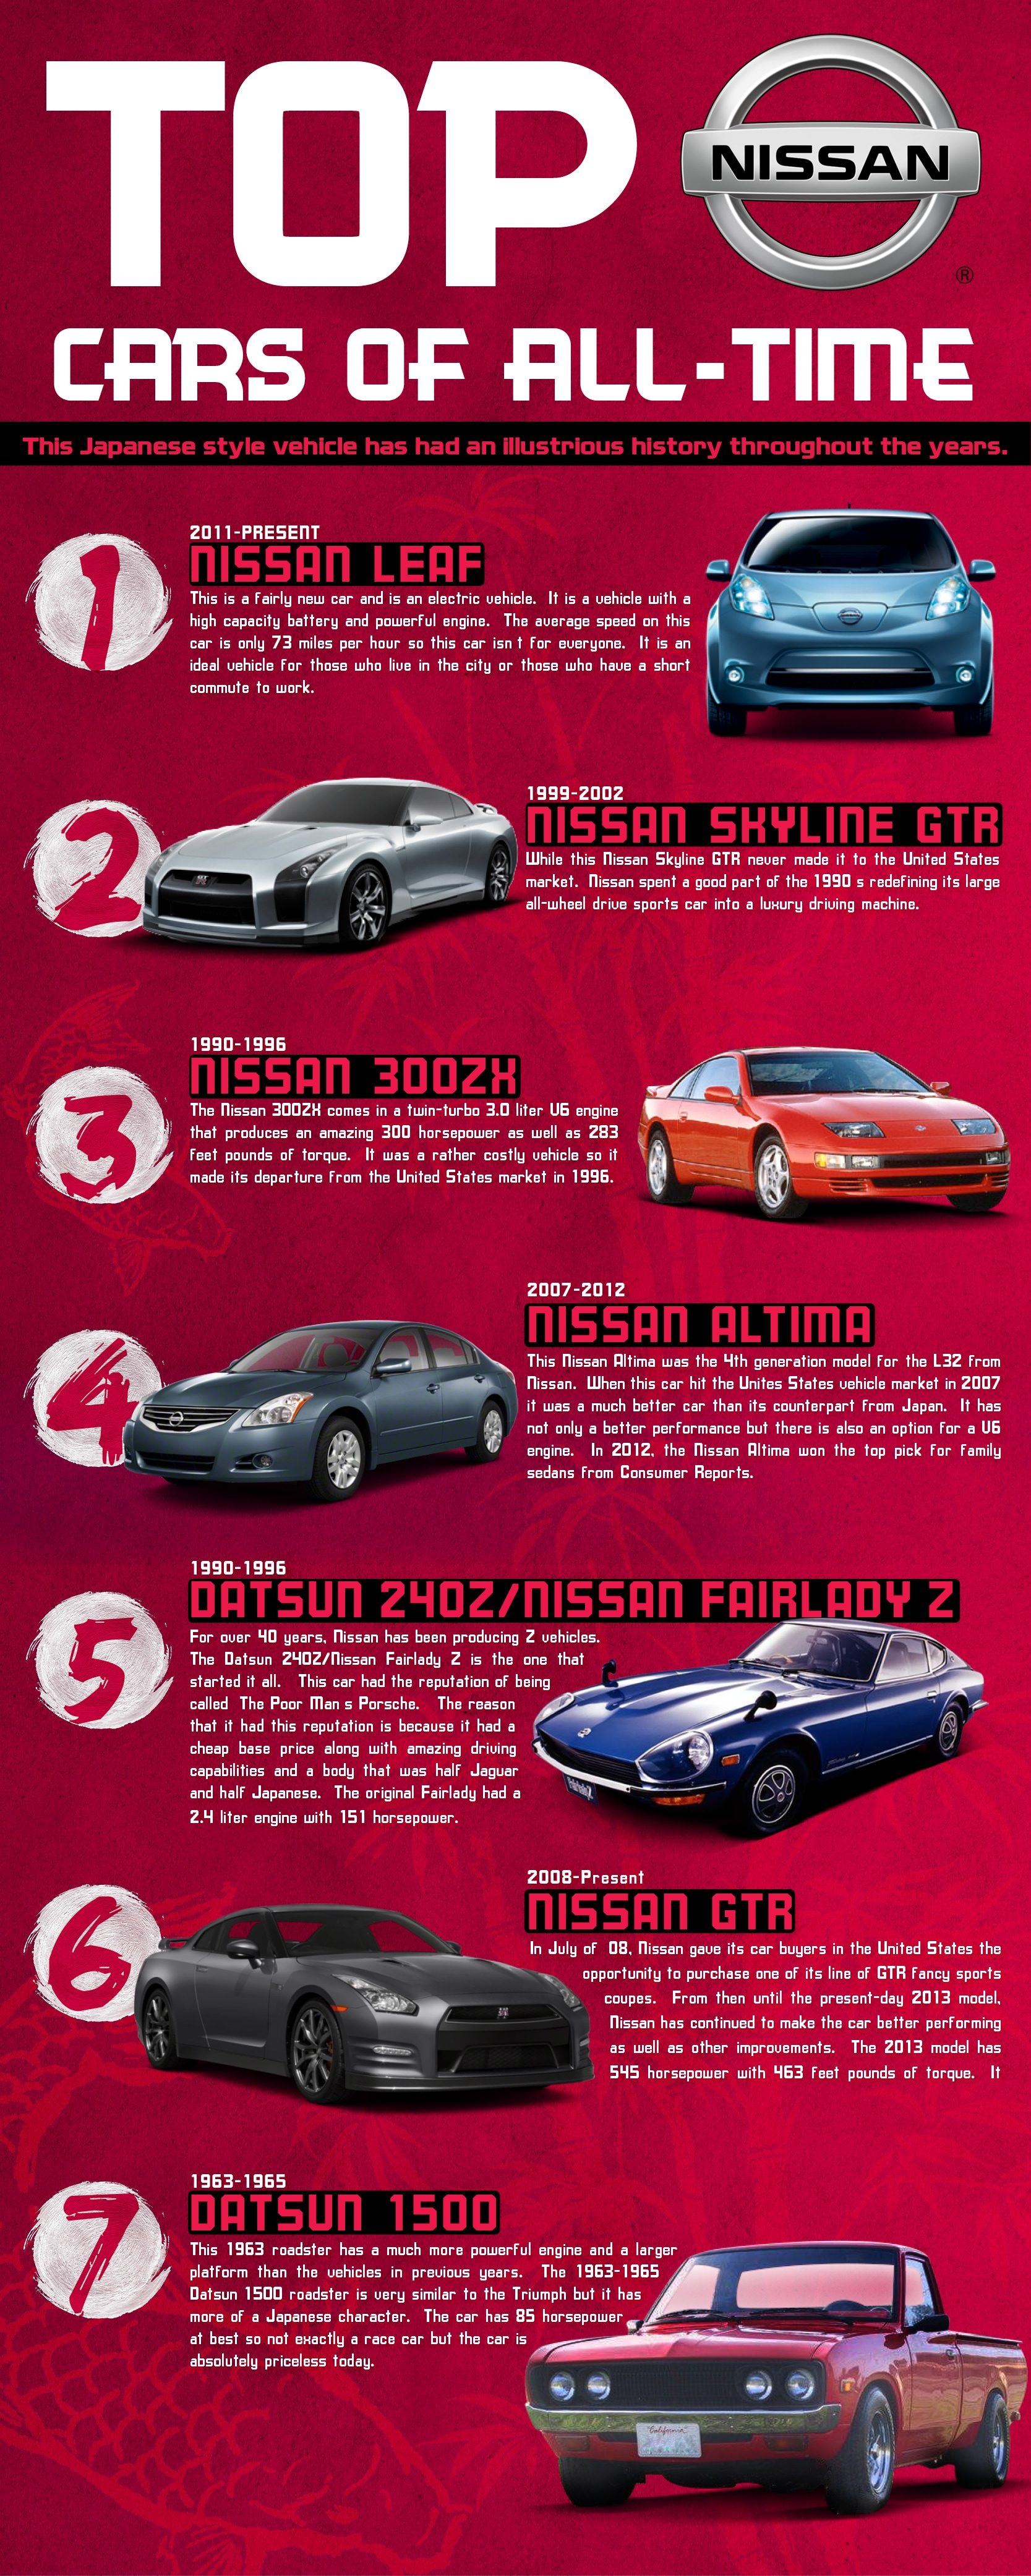 Top Nissan Cars Of All Time Lebanon Nh Best Nissan Cars In